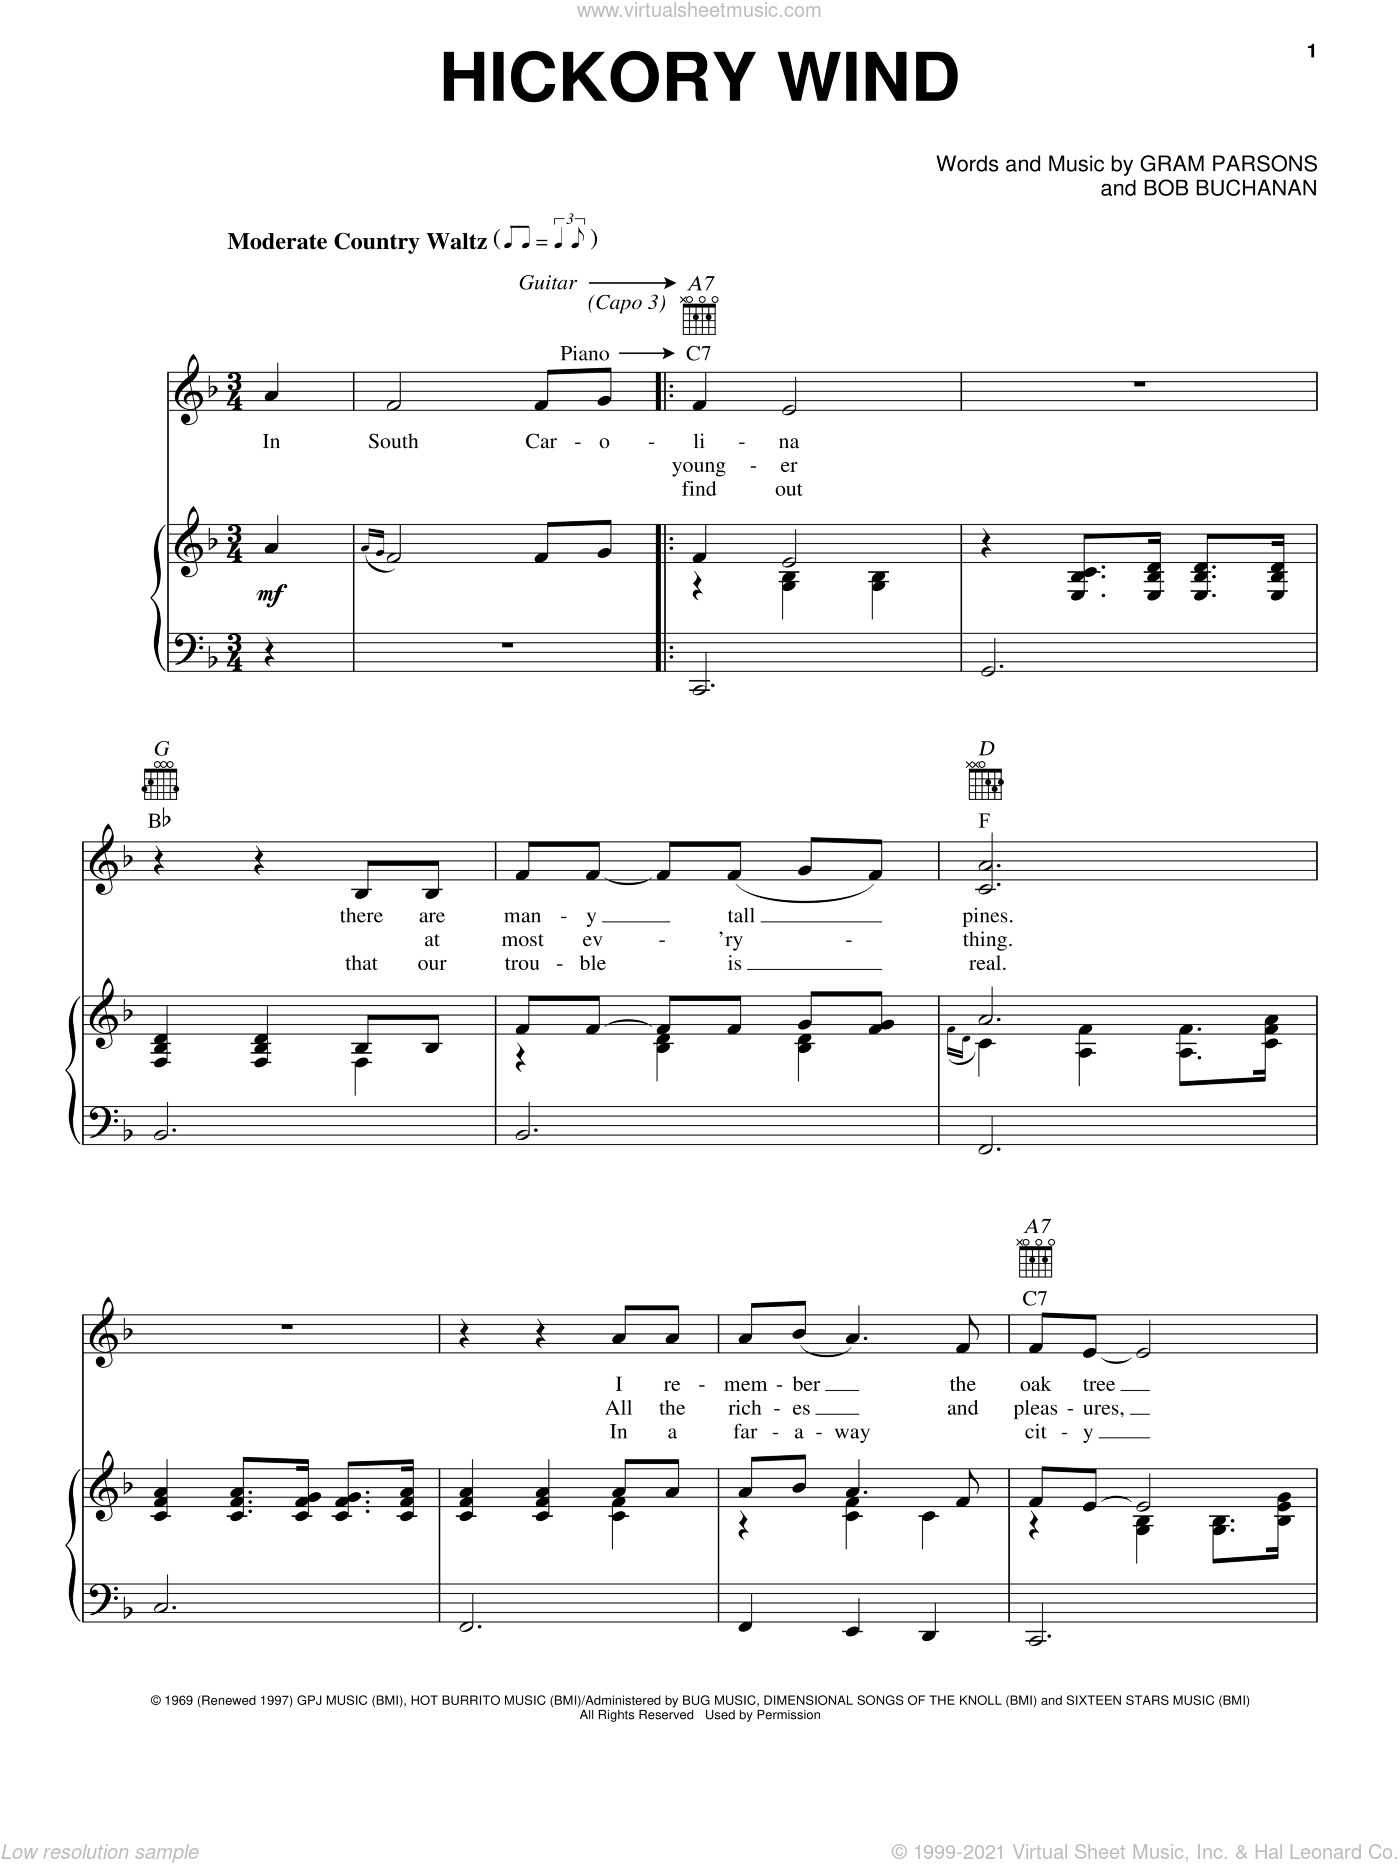 Hickory Wind sheet music for voice, piano or guitar by Bob Buchanan